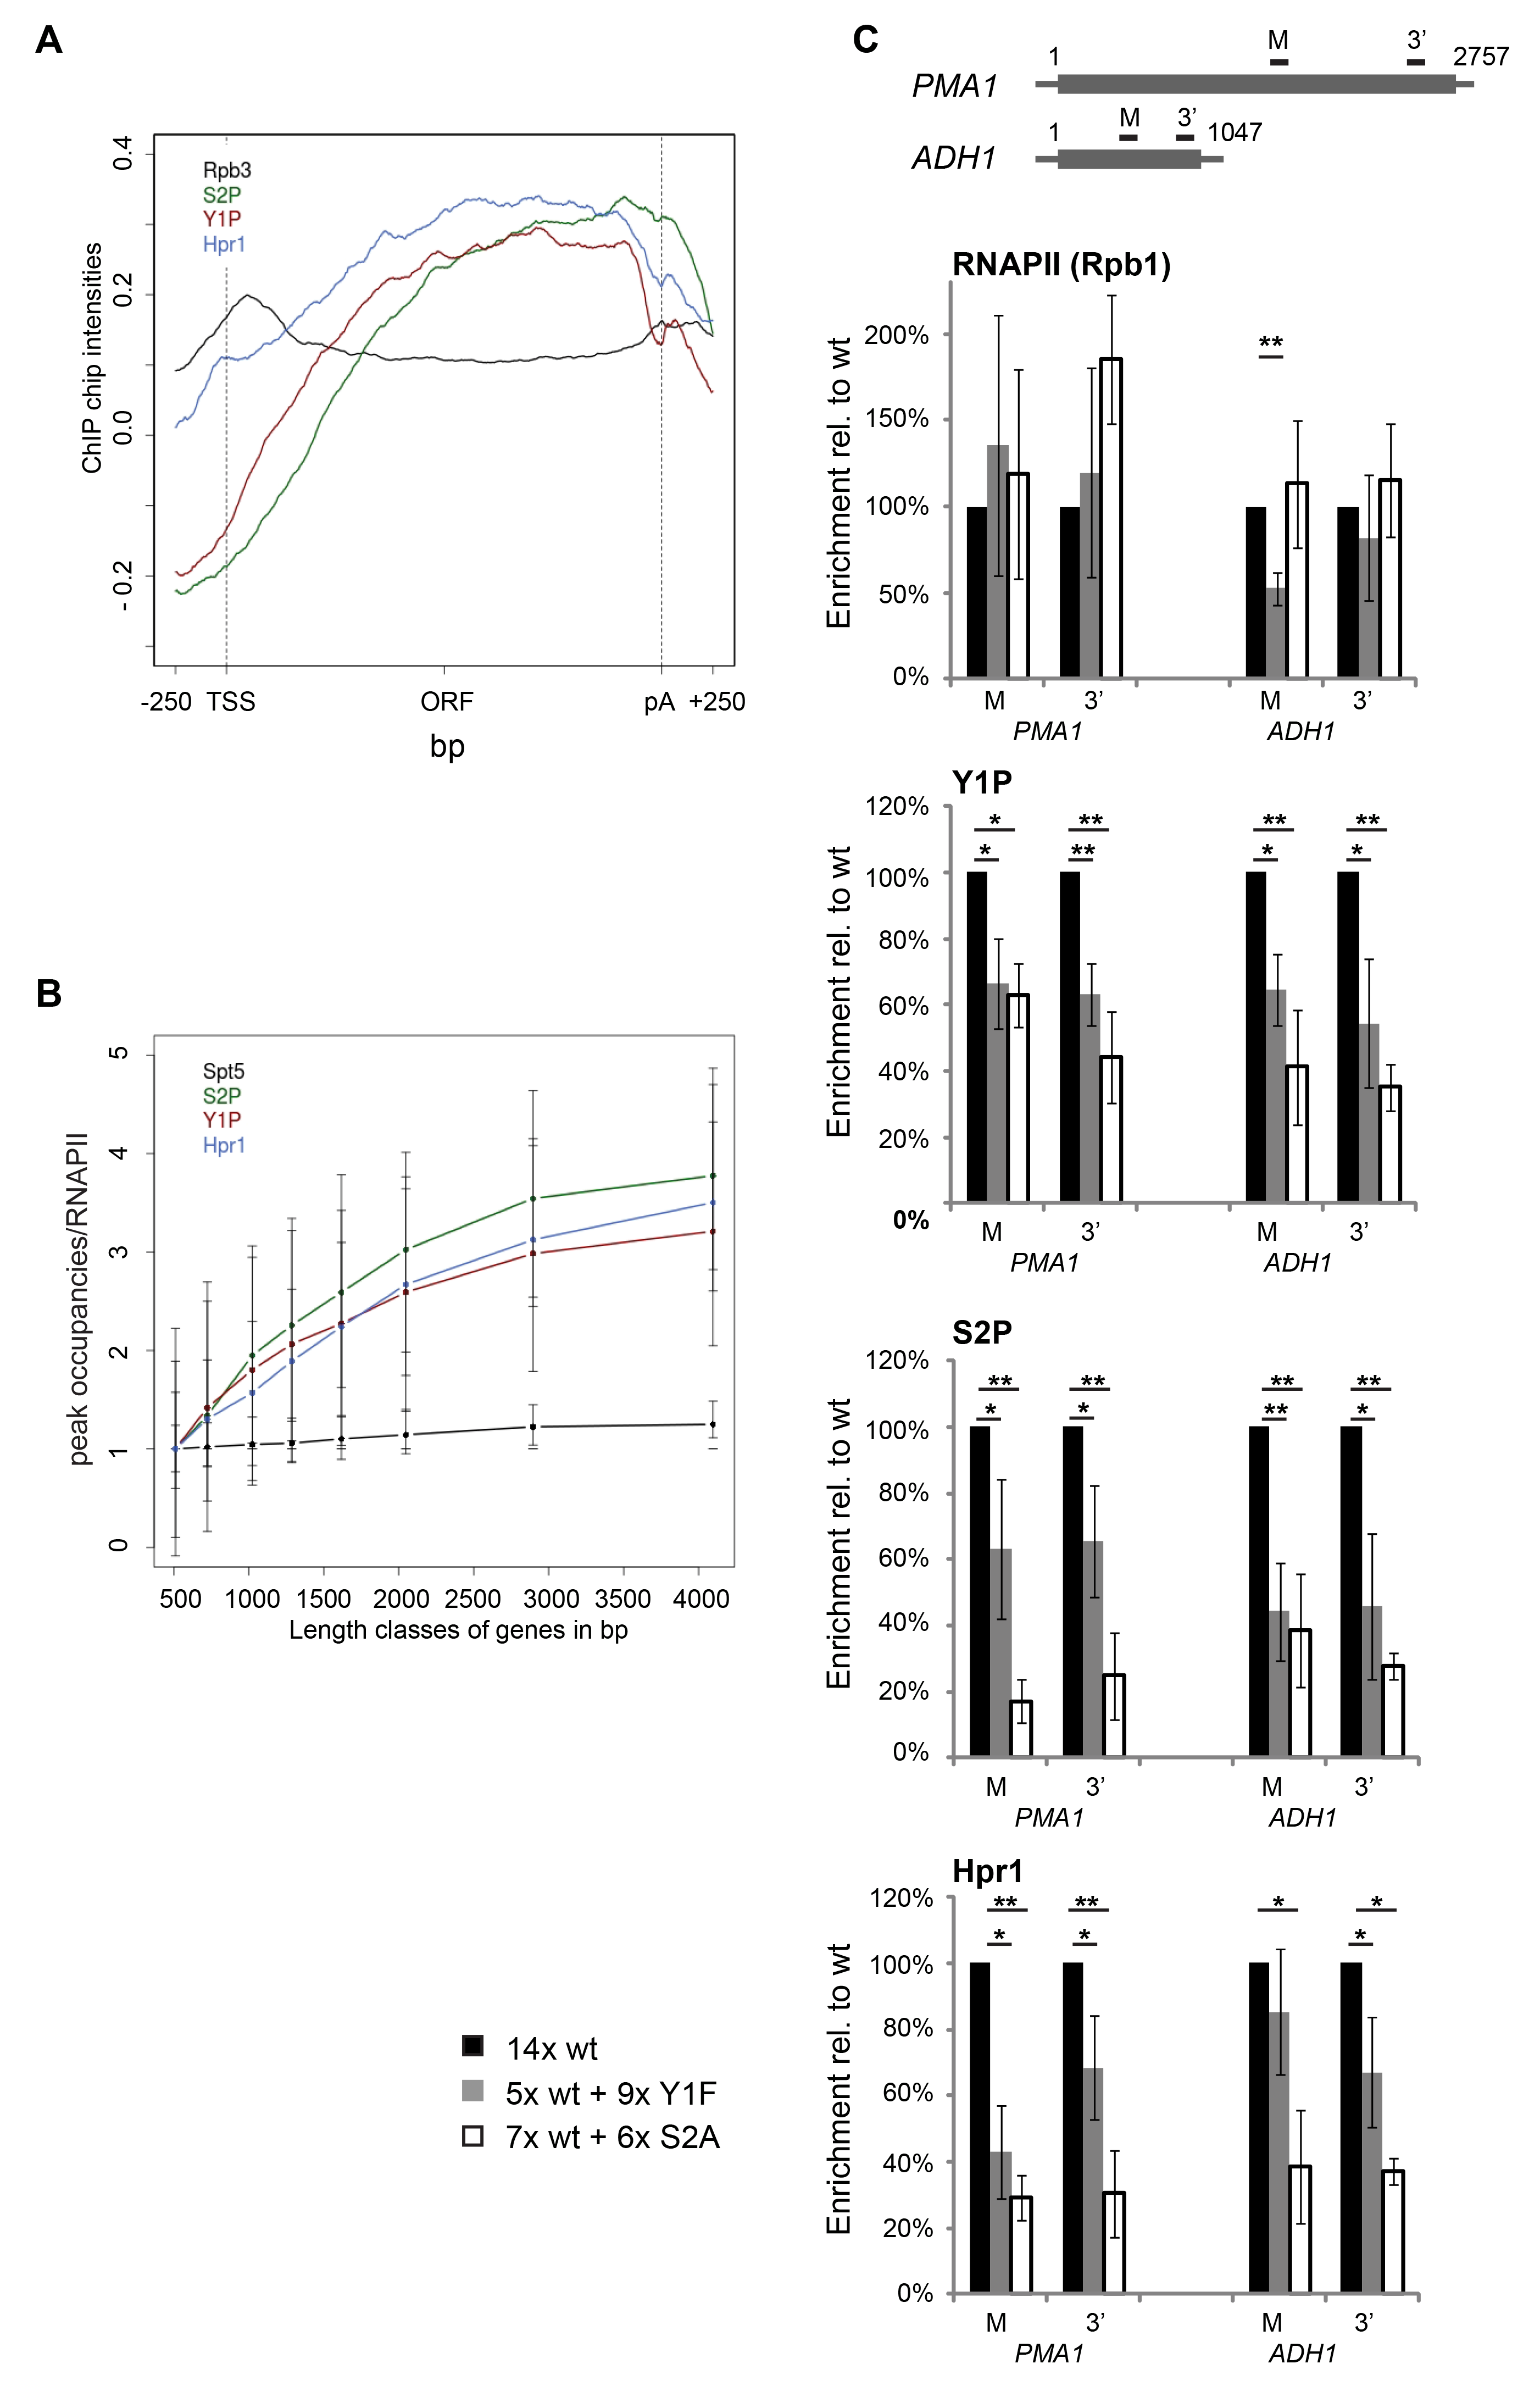 Y1 and/or S2 phosphorylation is essential for TREX recruitment in vivo.